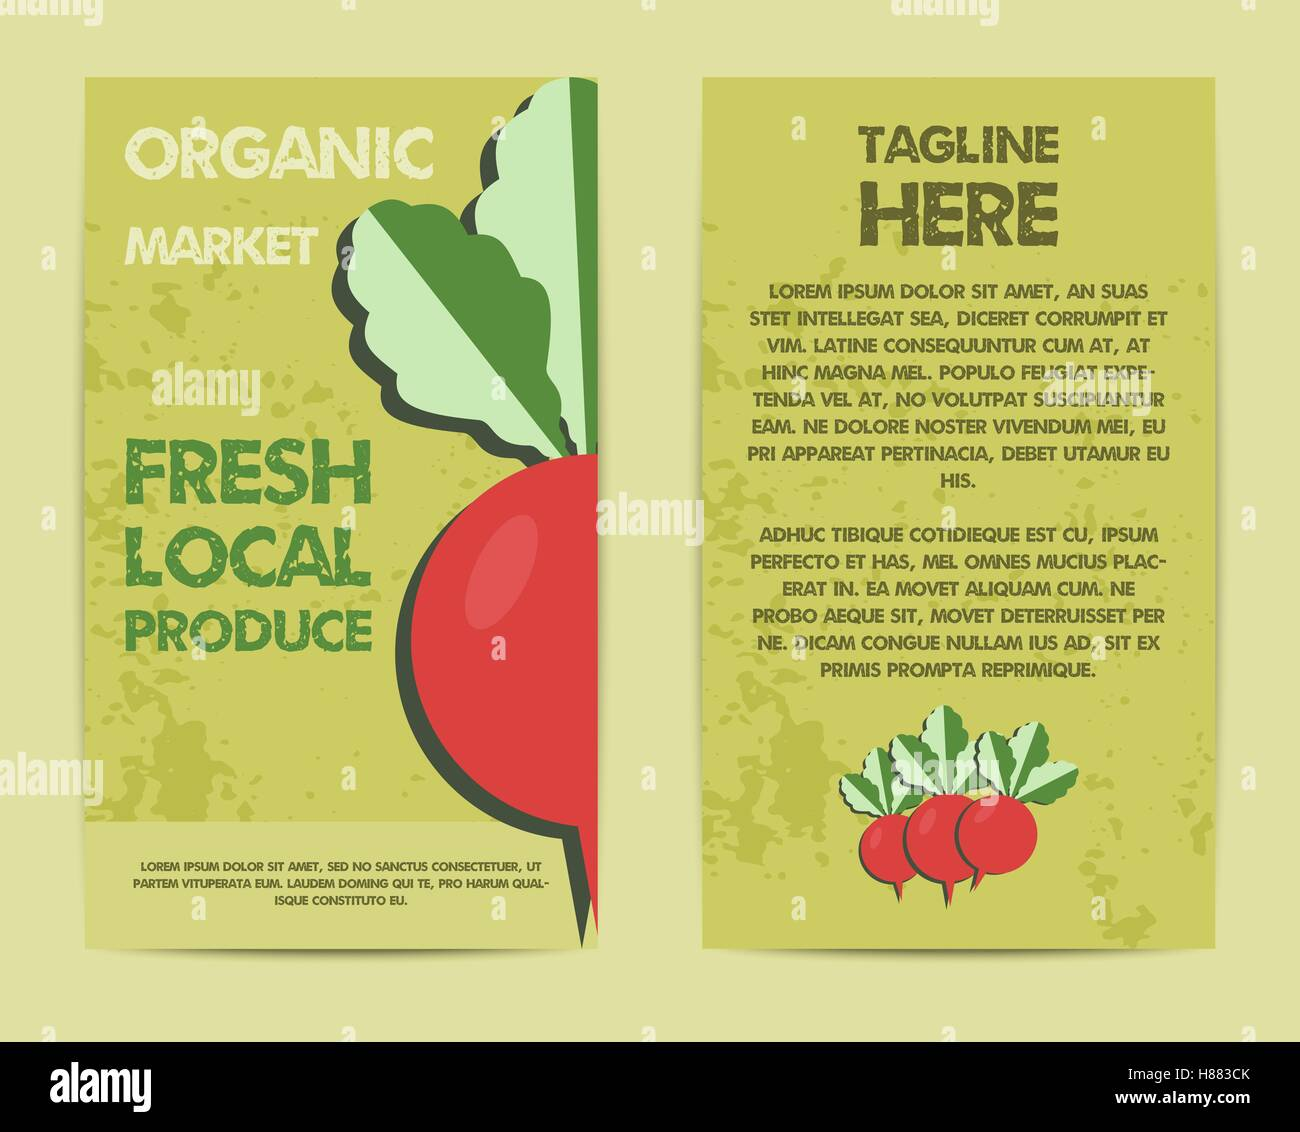 hight resolution of stylish farm fresh flyer template or brochure design mock up design with shadow vintage colors best for natural shop organic fairs eco markets and